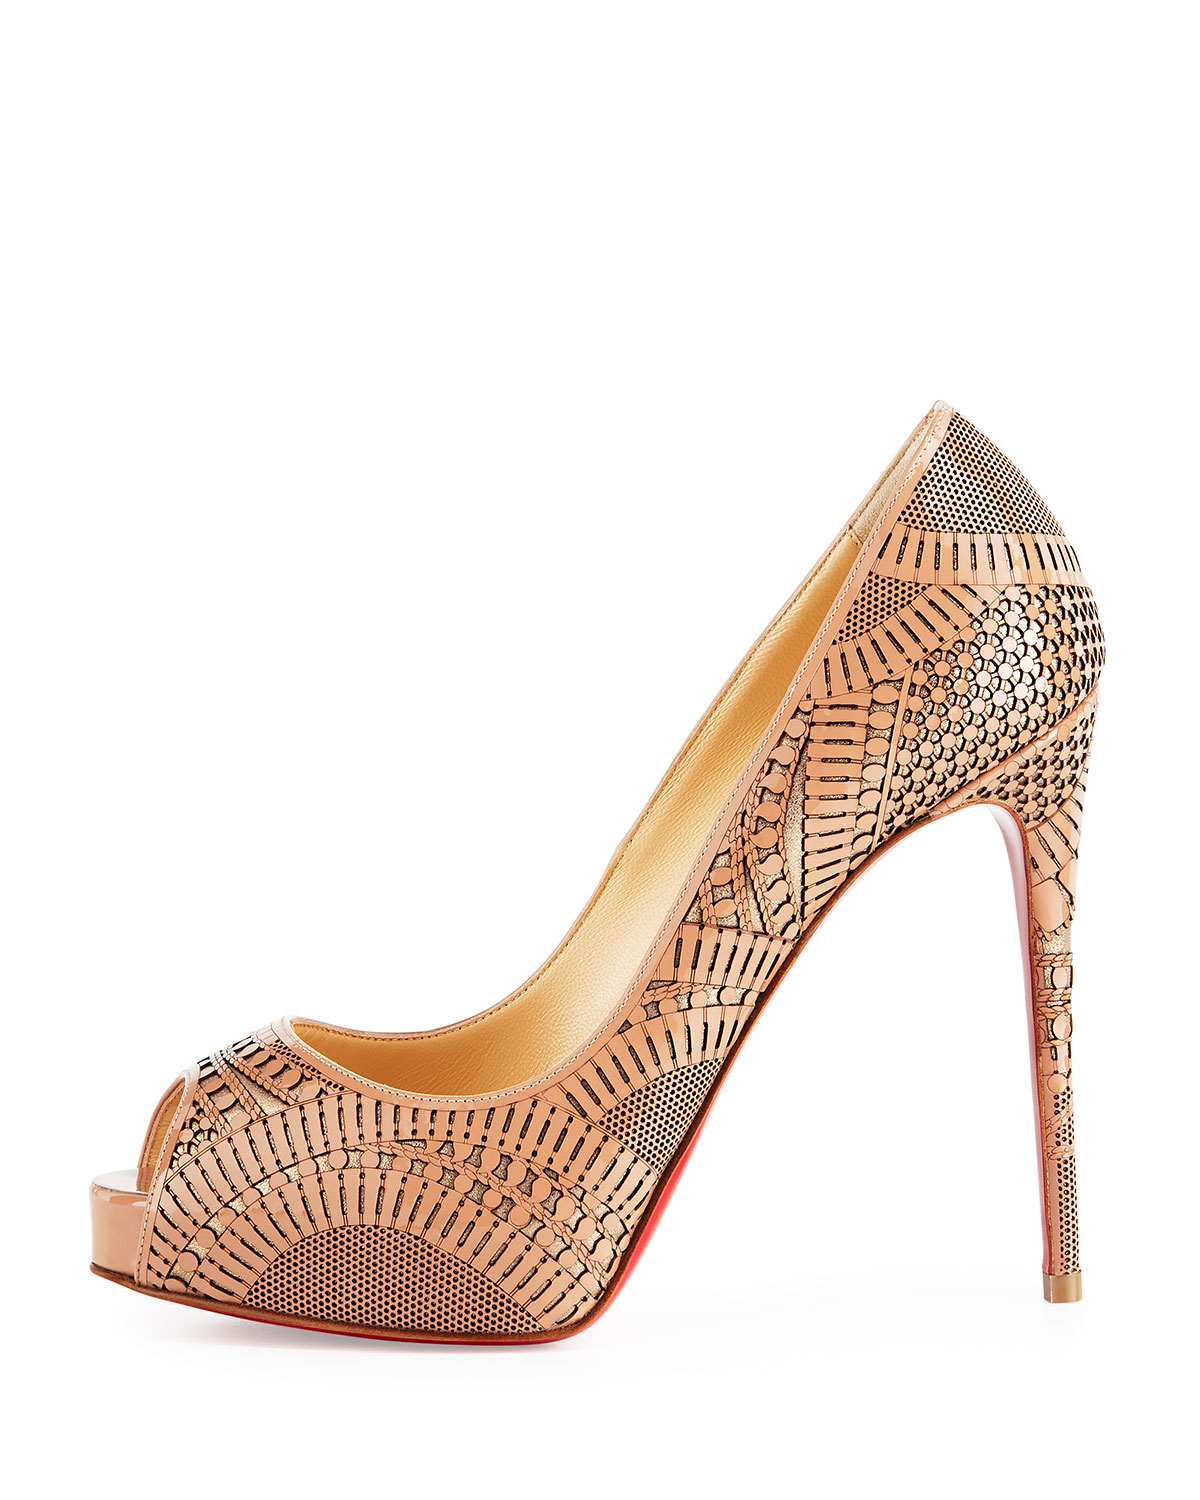 us replica cl shoes - Christian louboutin Suellena Laser-Cut Leather Pumps in Beige ...